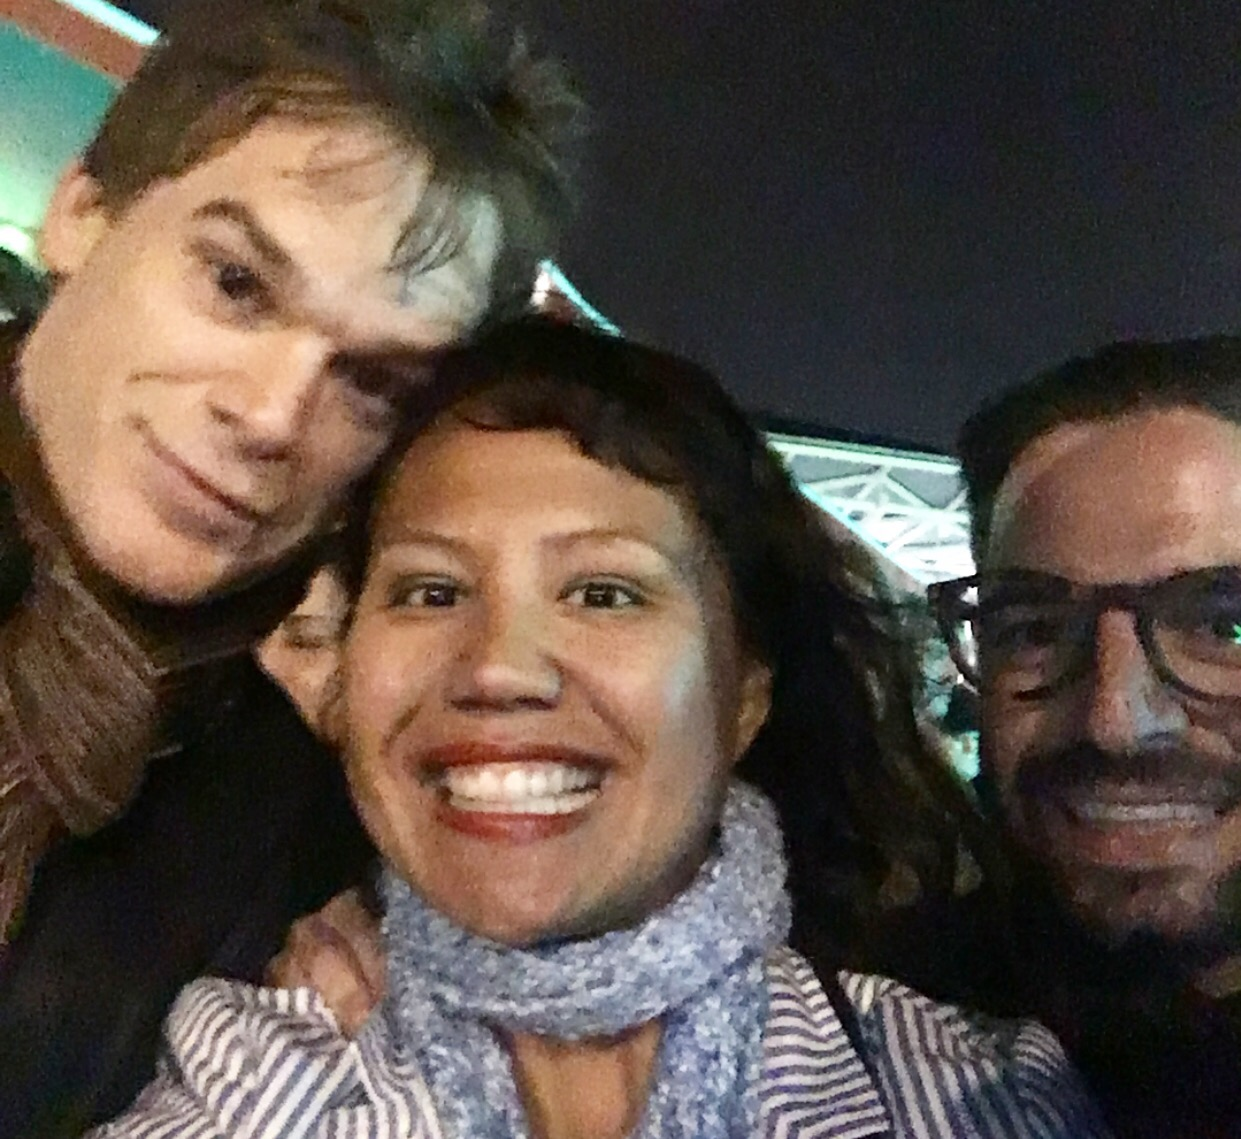 Gratitude for artists it only takes a smile tonight we had the pleasure to meet michael c hall after an amazing performance in lazarus the show was stunning and inspirational m4hsunfo